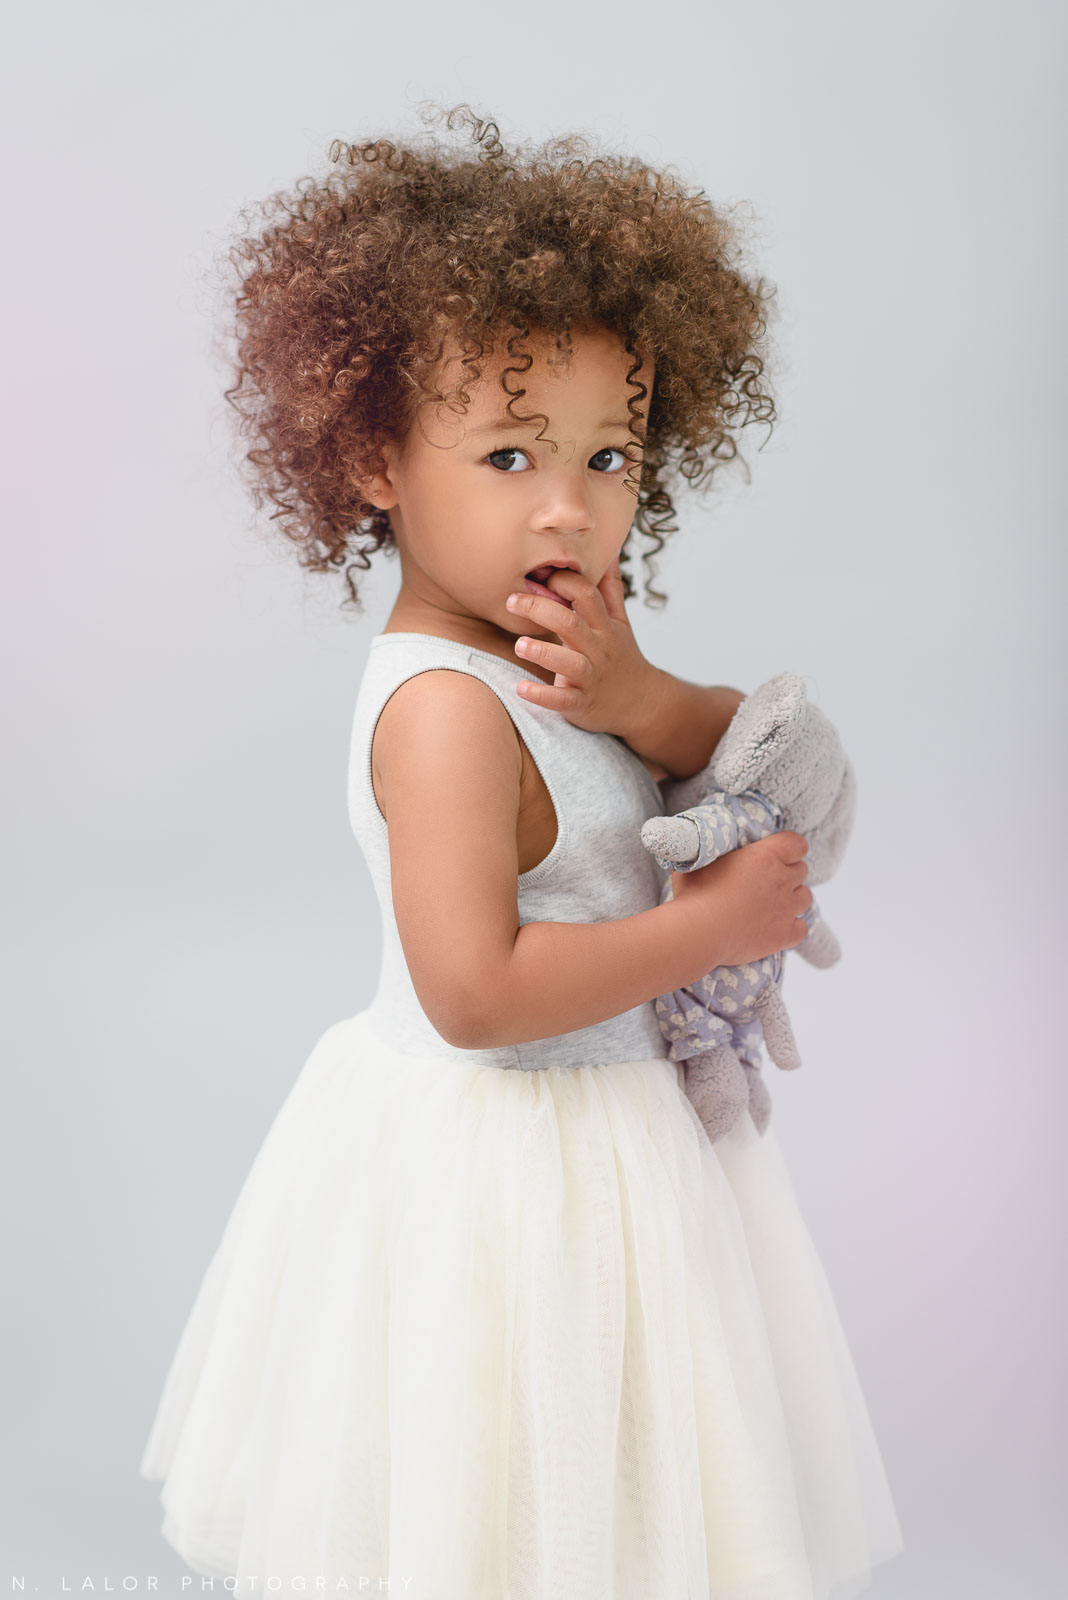 2-year old girl with her stuffed toy. Studio portrait session with N. Lalor Photography in Greenwich, Connecticut.